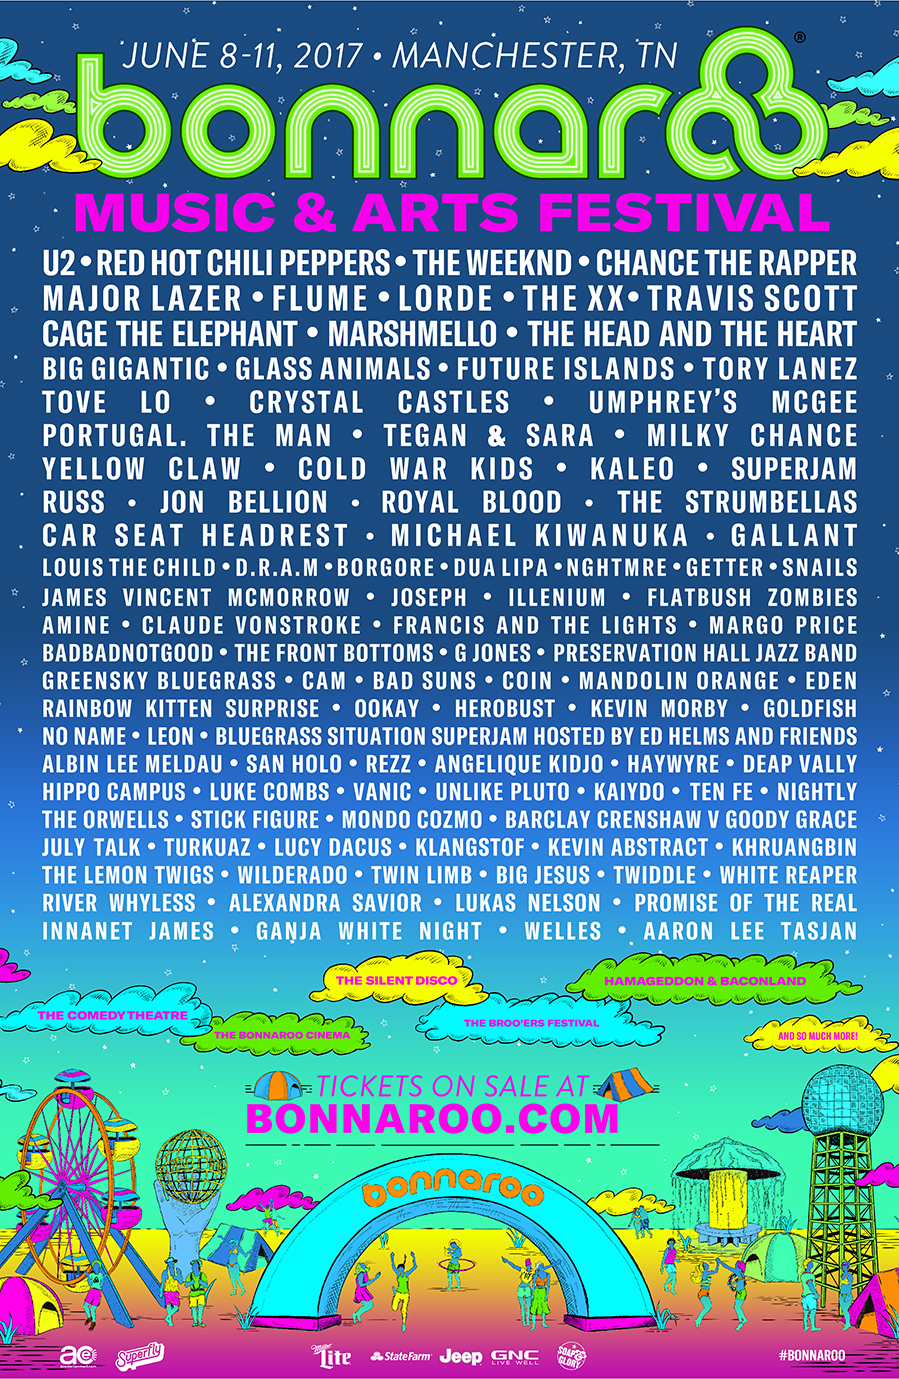 Red Hot Chili Peppers, Cage the Elephant, More Announced For 2017 Bonnaroo Music Festival